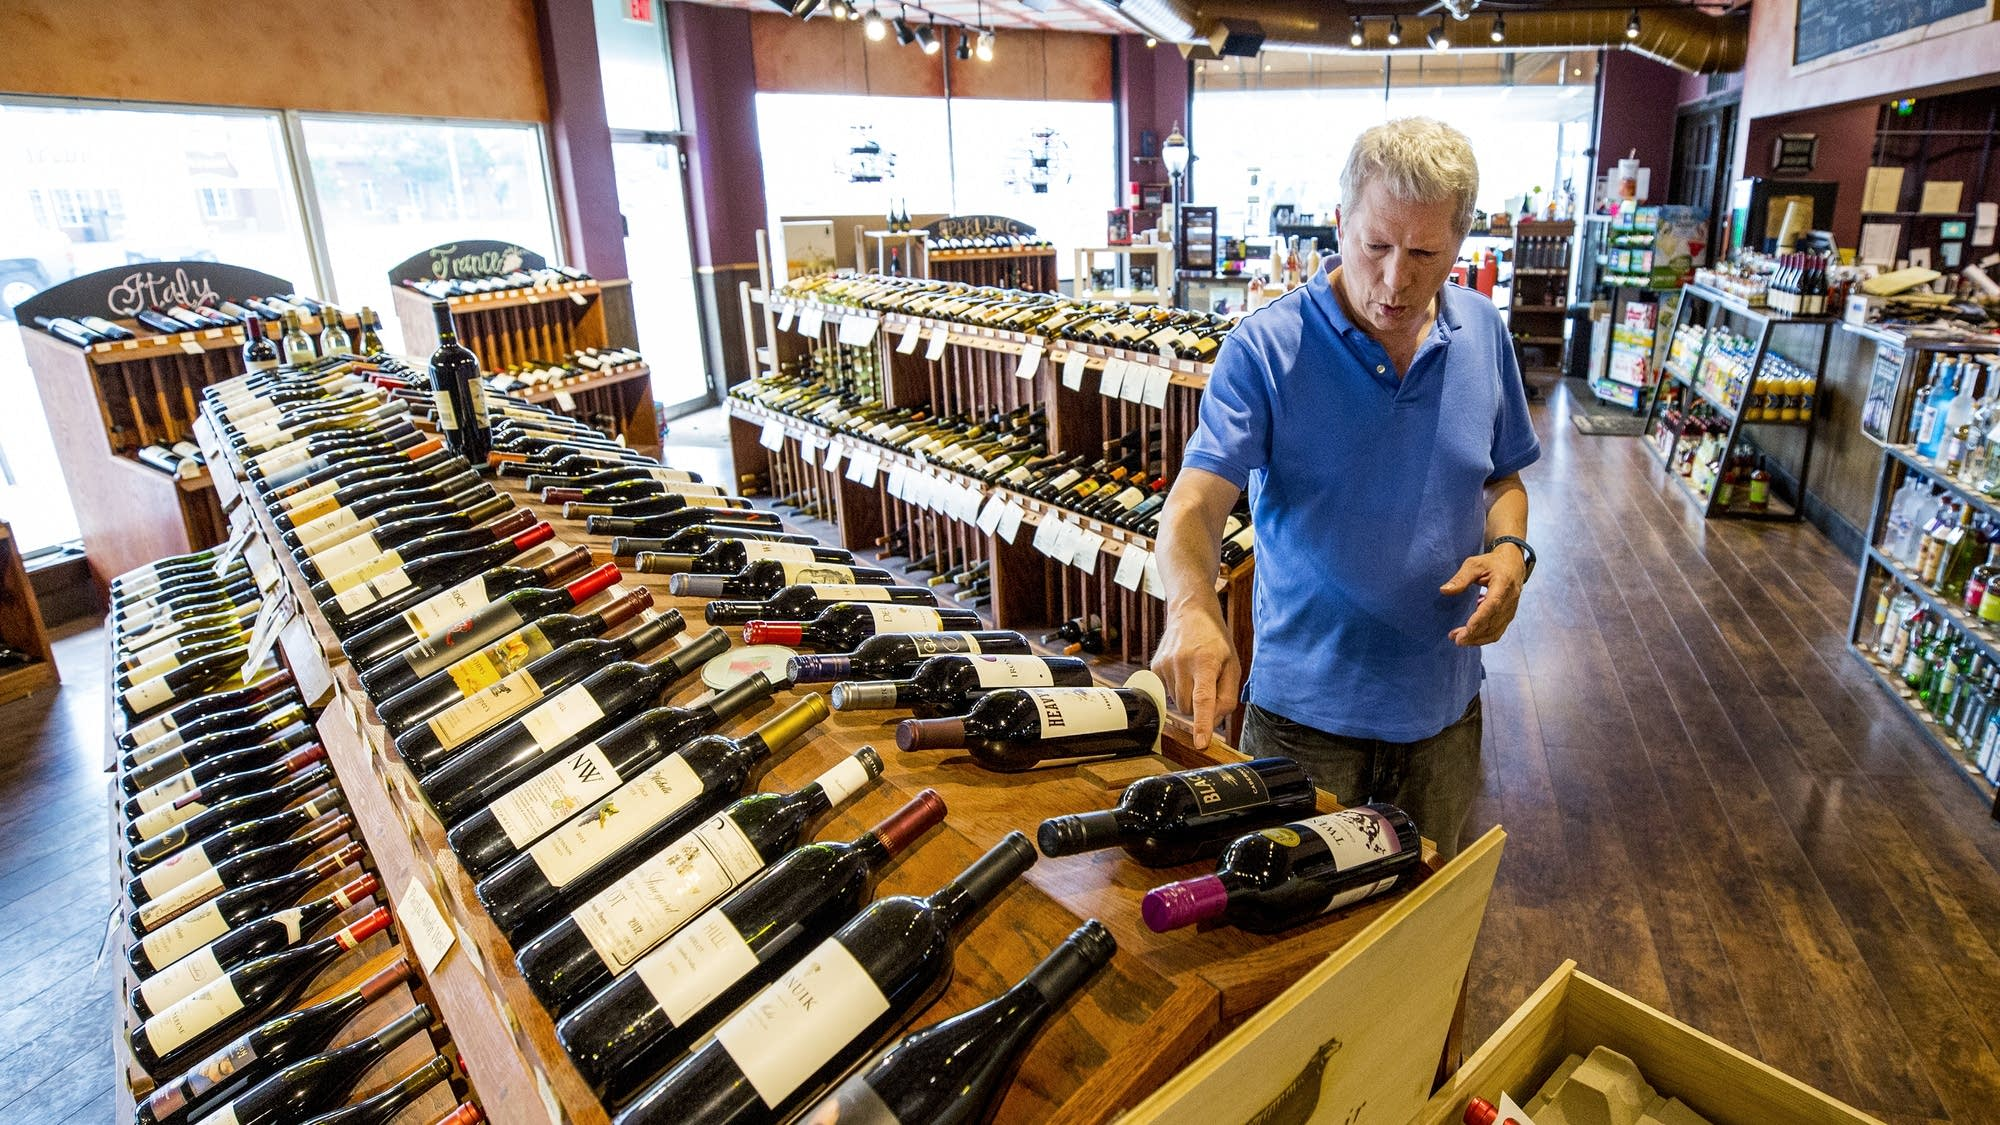 The Wine Shop owner Steve Pickard talks about the wine selection.